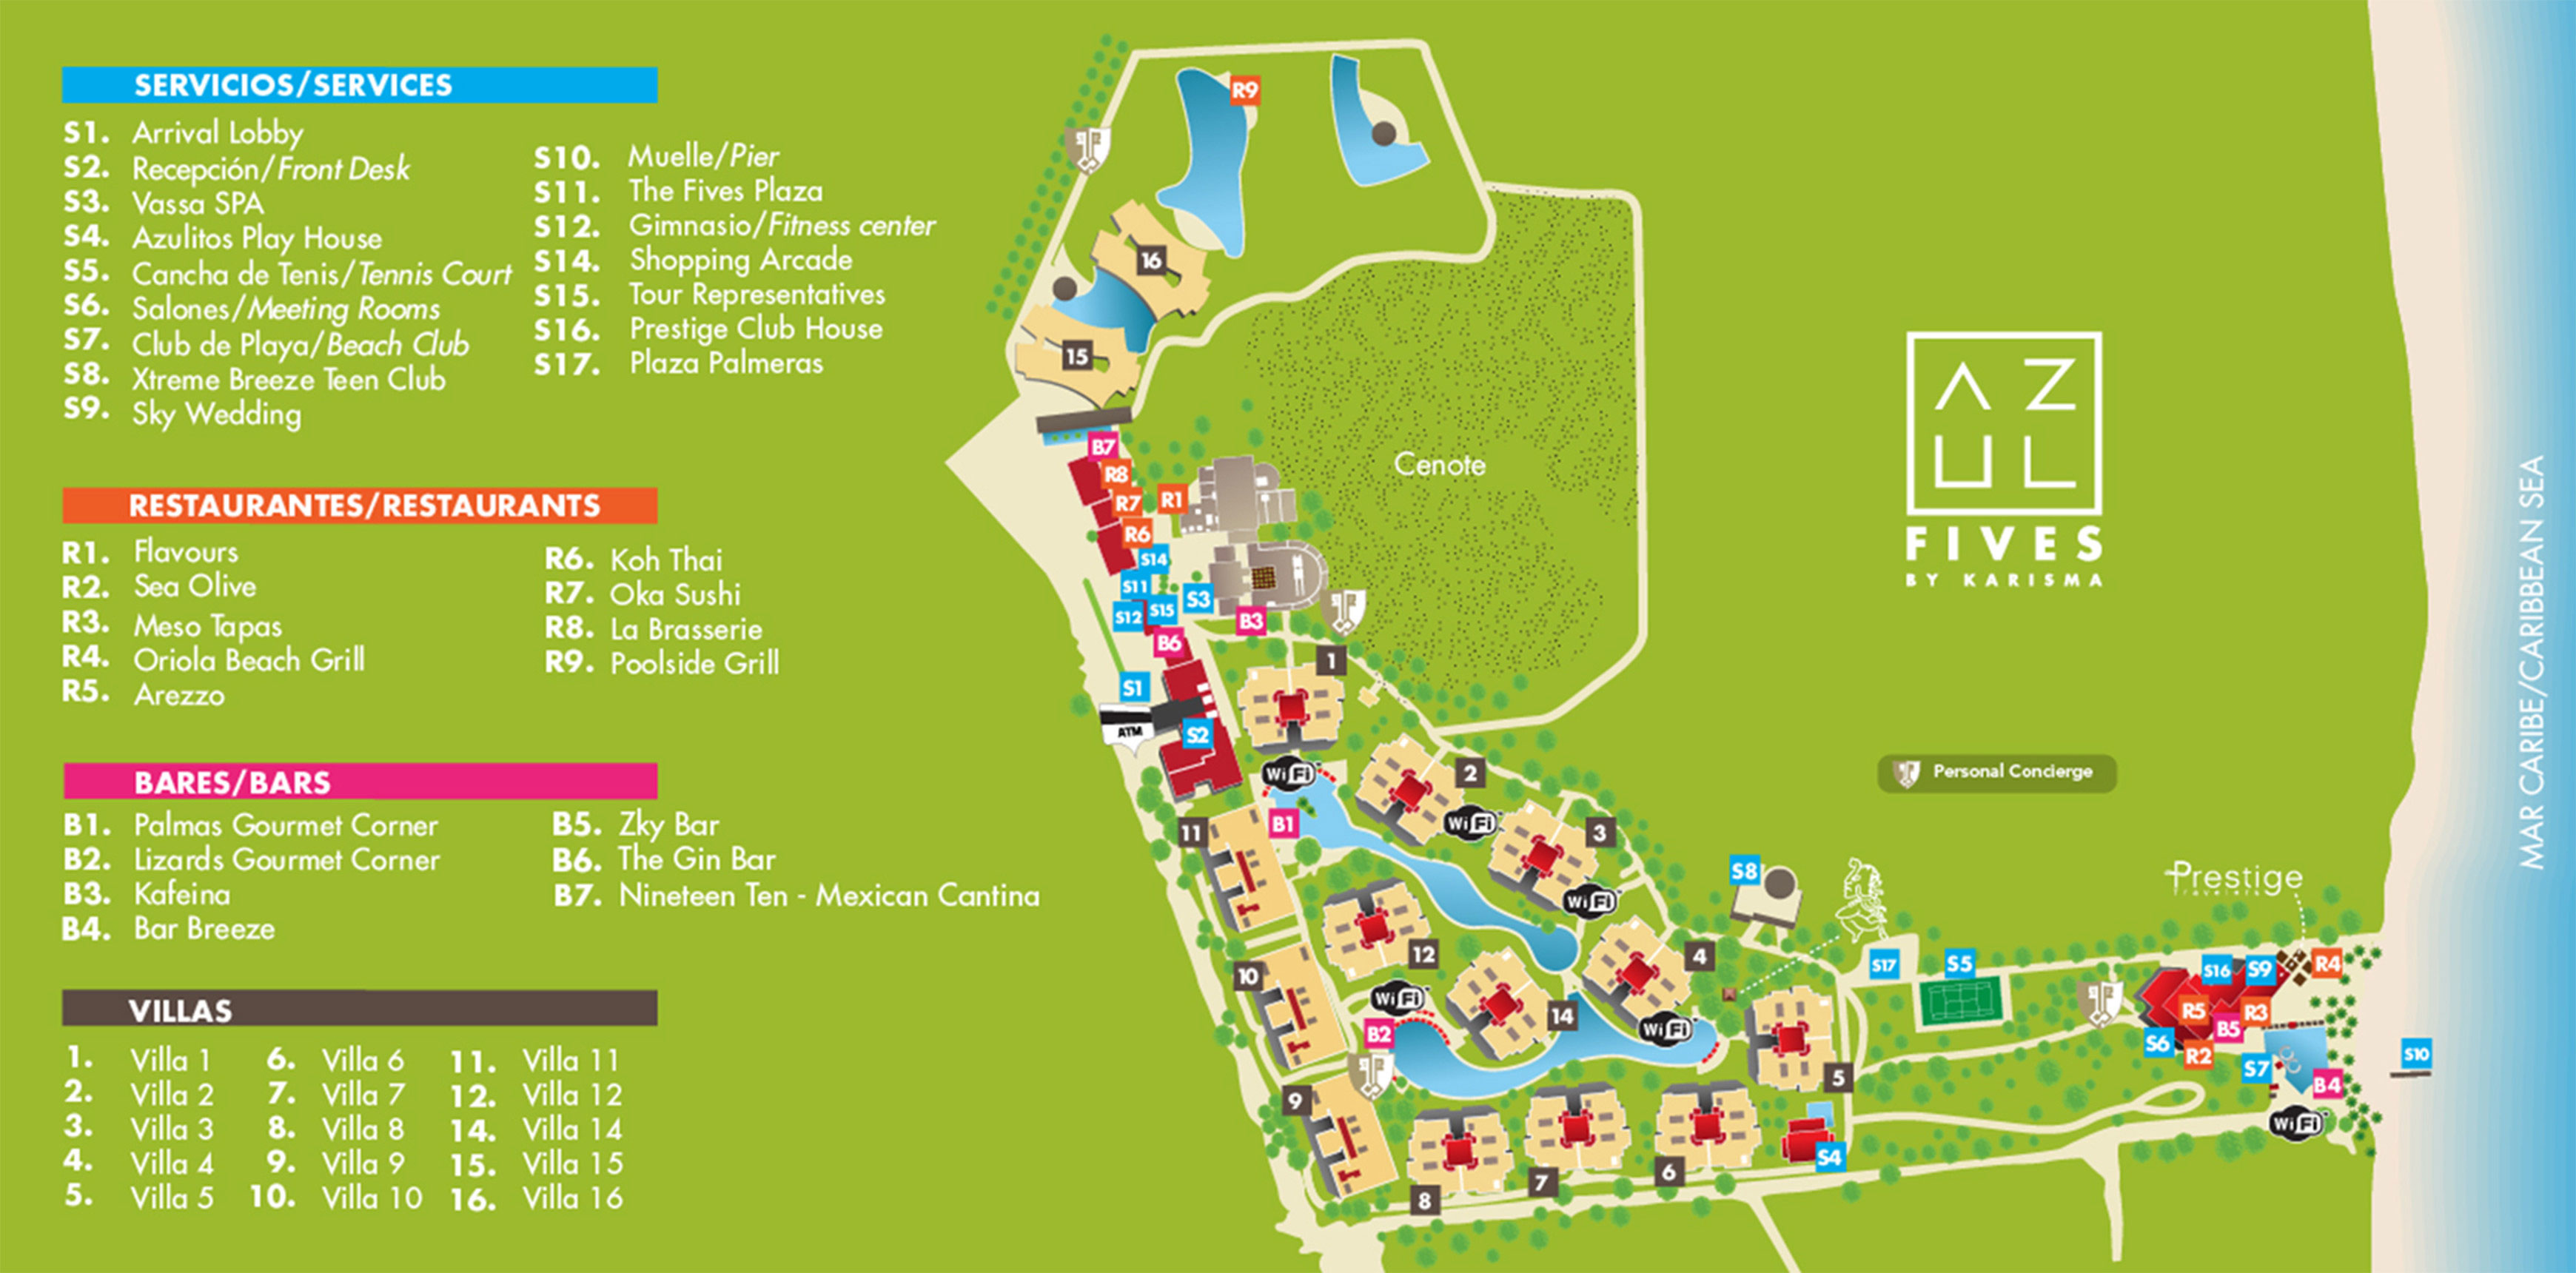 All Inclusive Resorts Riviera Maya Map